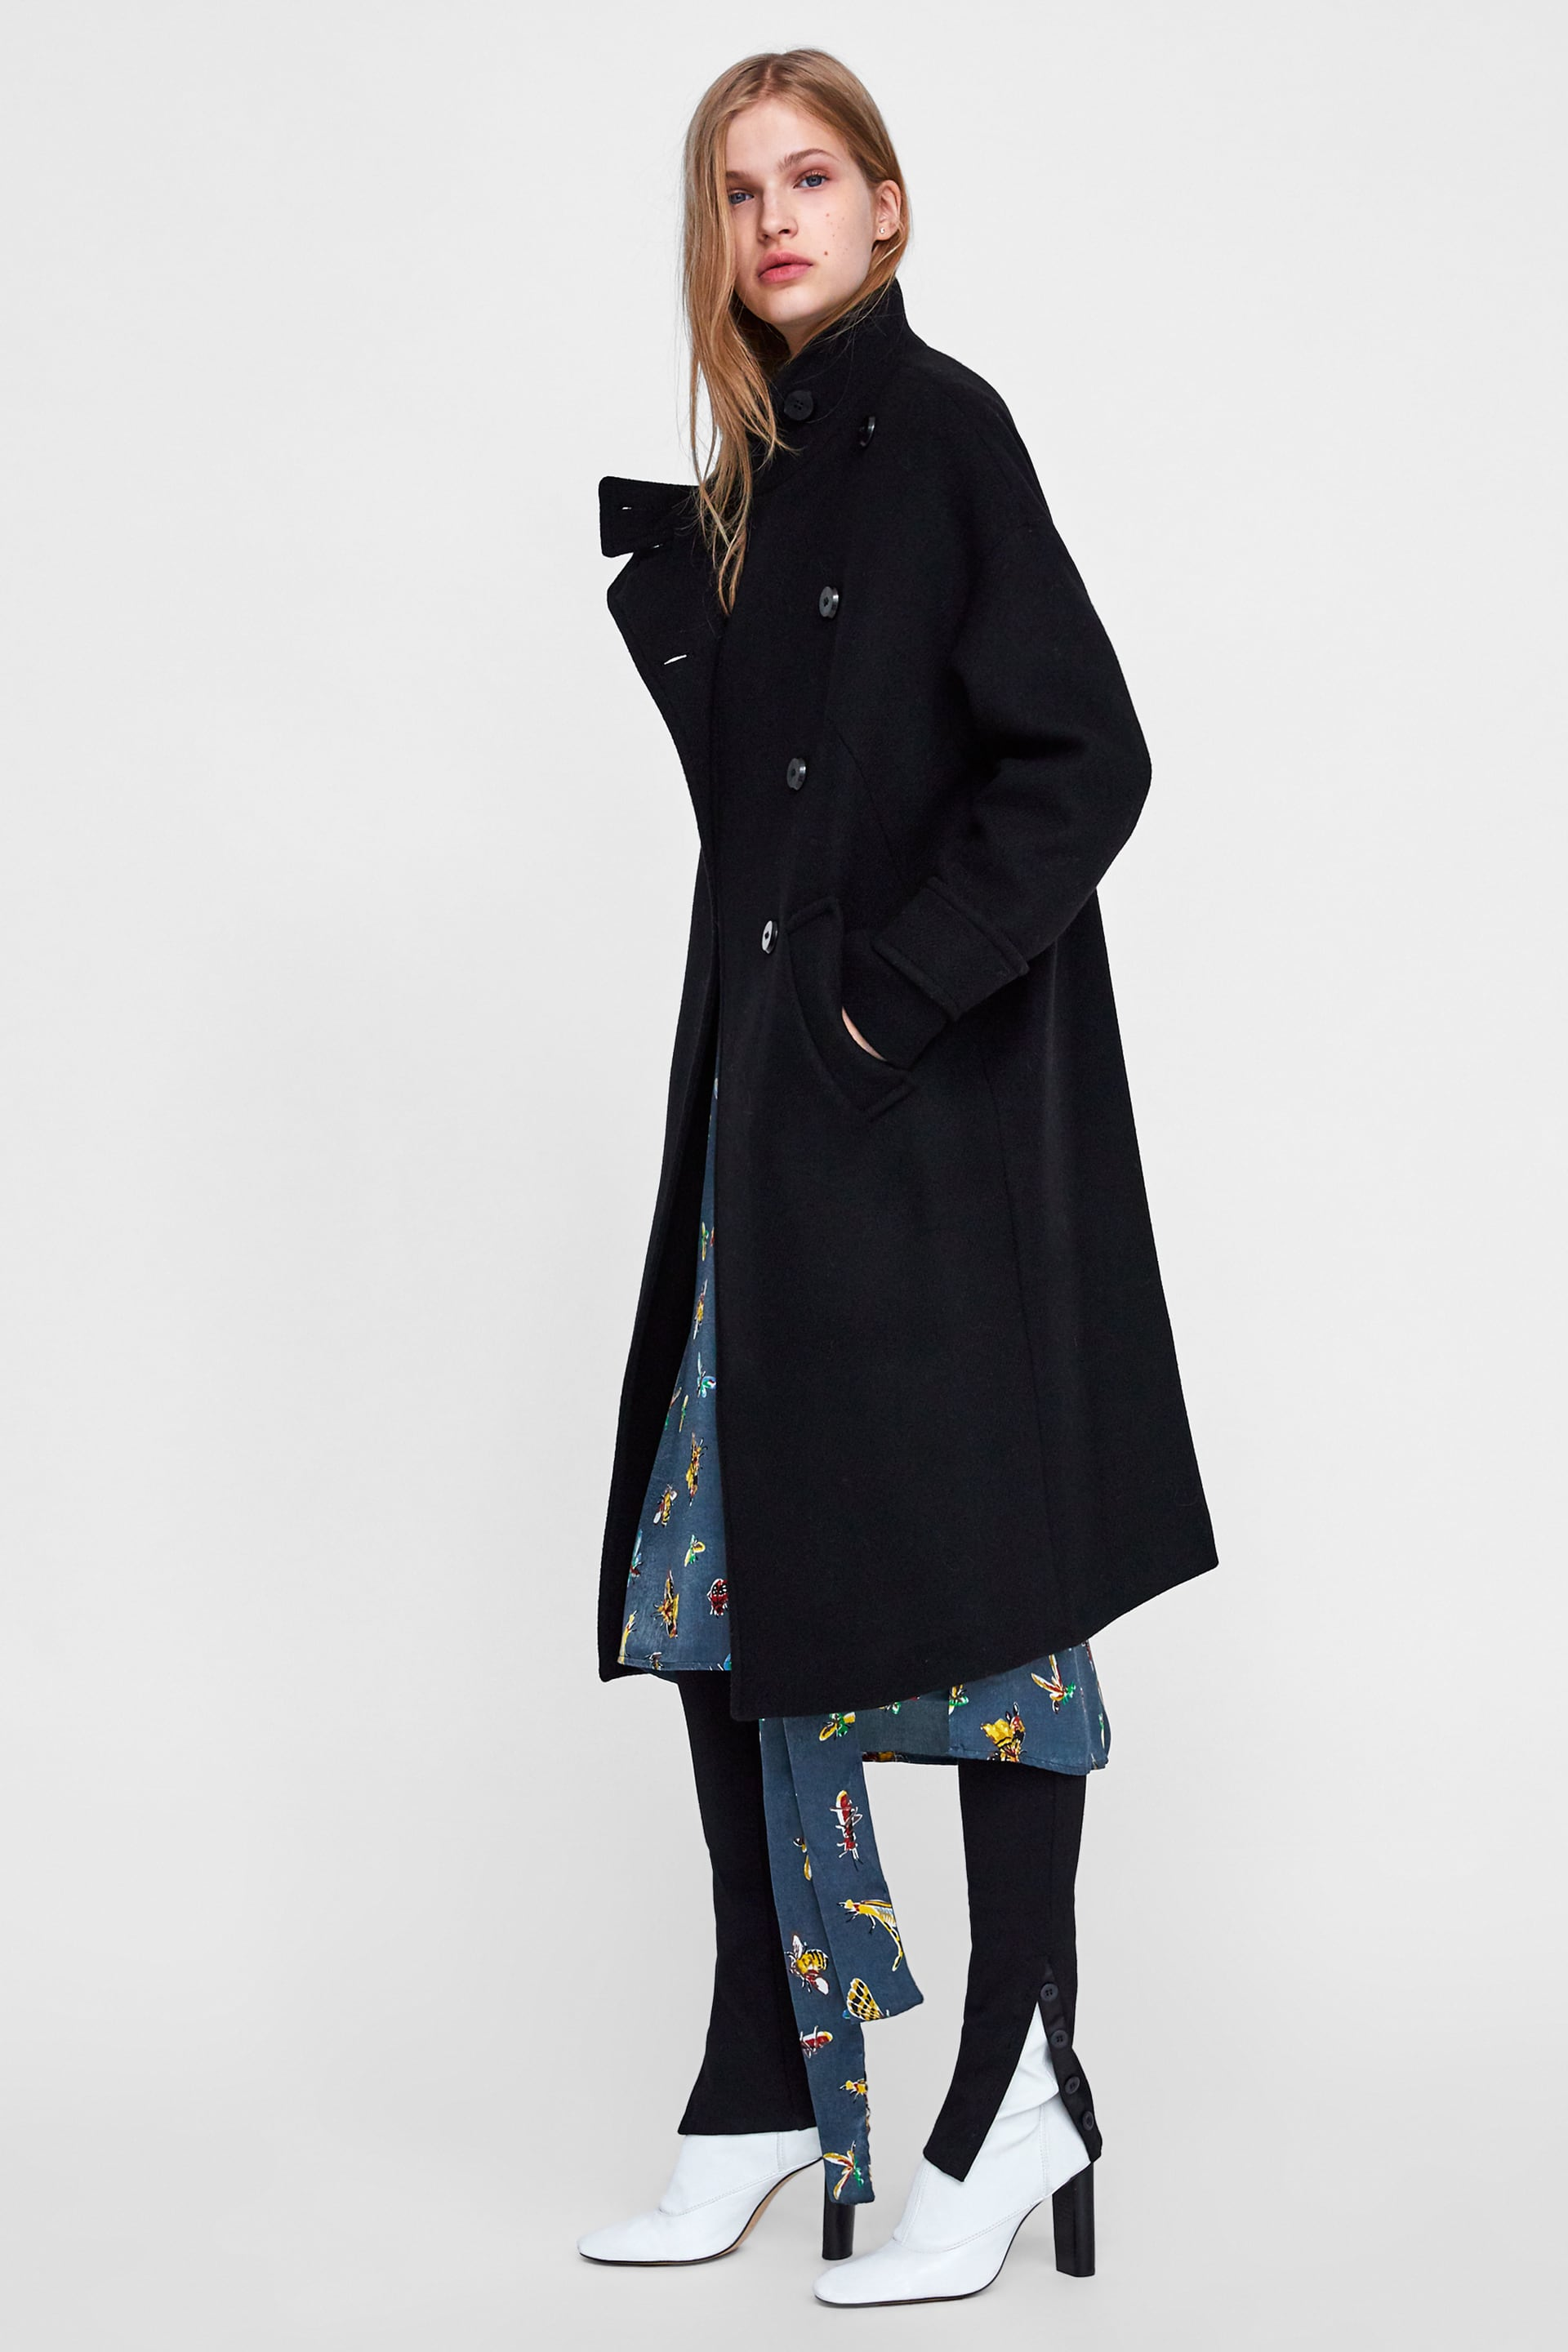 a30bc288 Best Zara Winter Coats 2018: Womens Fur, Puffers & More